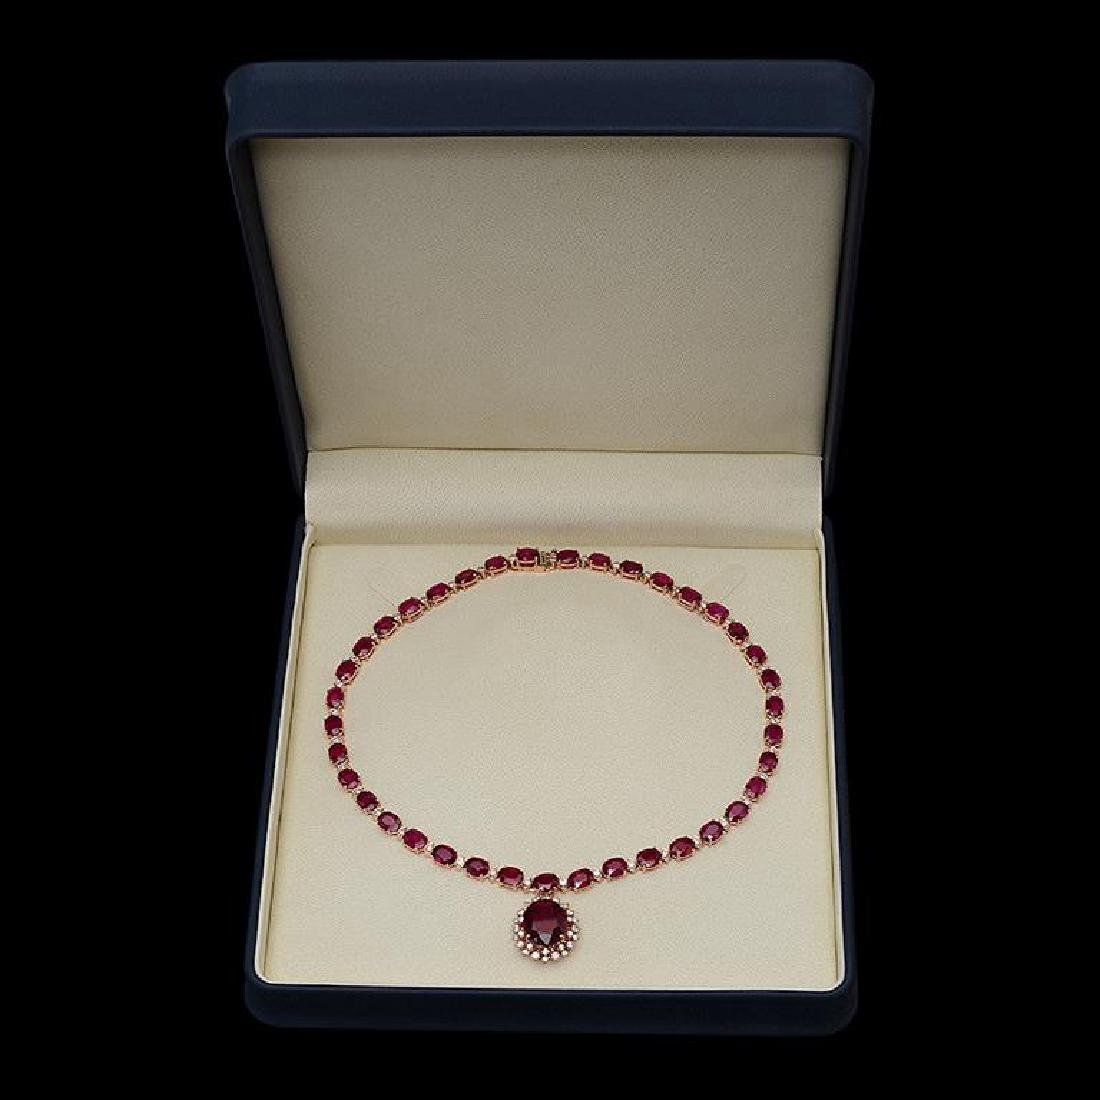 14K Gold 67.60ct Ruby & 2.55ct Diamond Necklace - 3